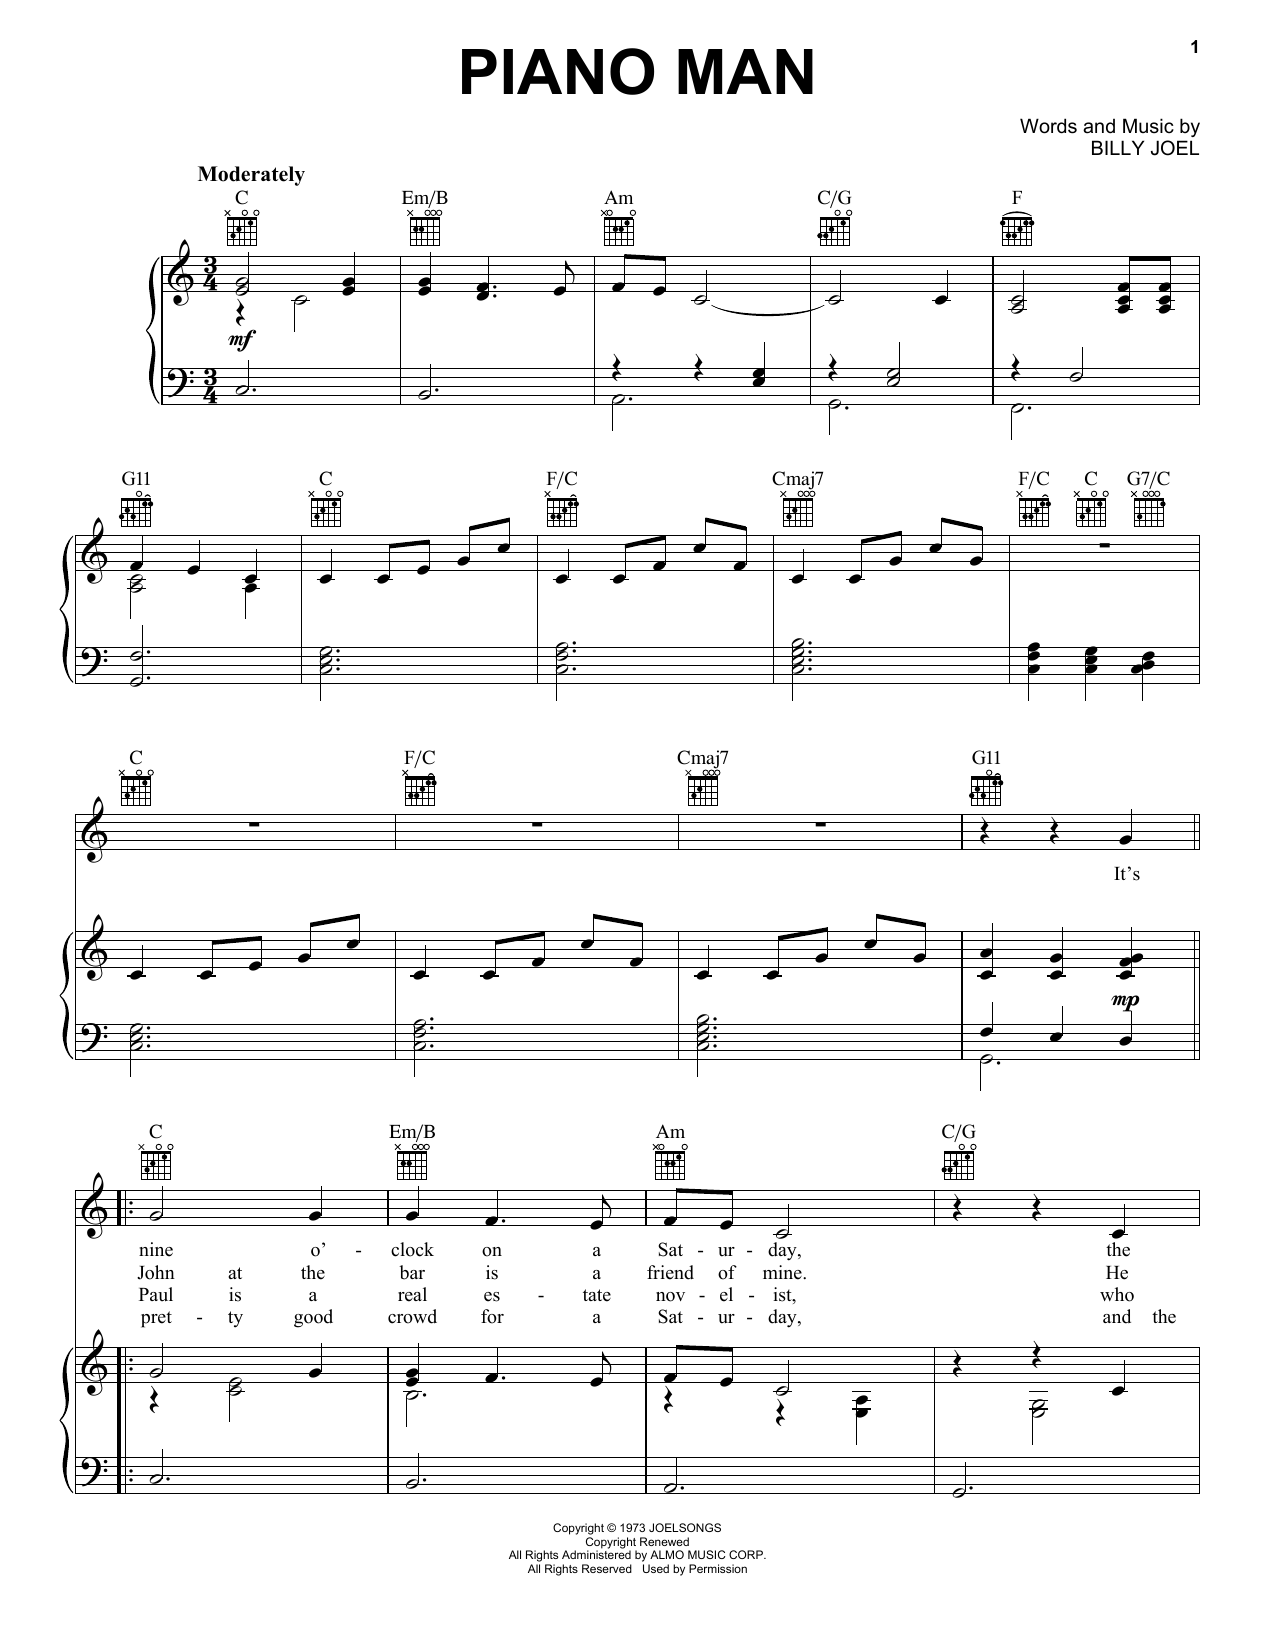 Billy Joel Piano Man Piano Man Sheet Music By Billy Joel Piano Vocal And Guitar